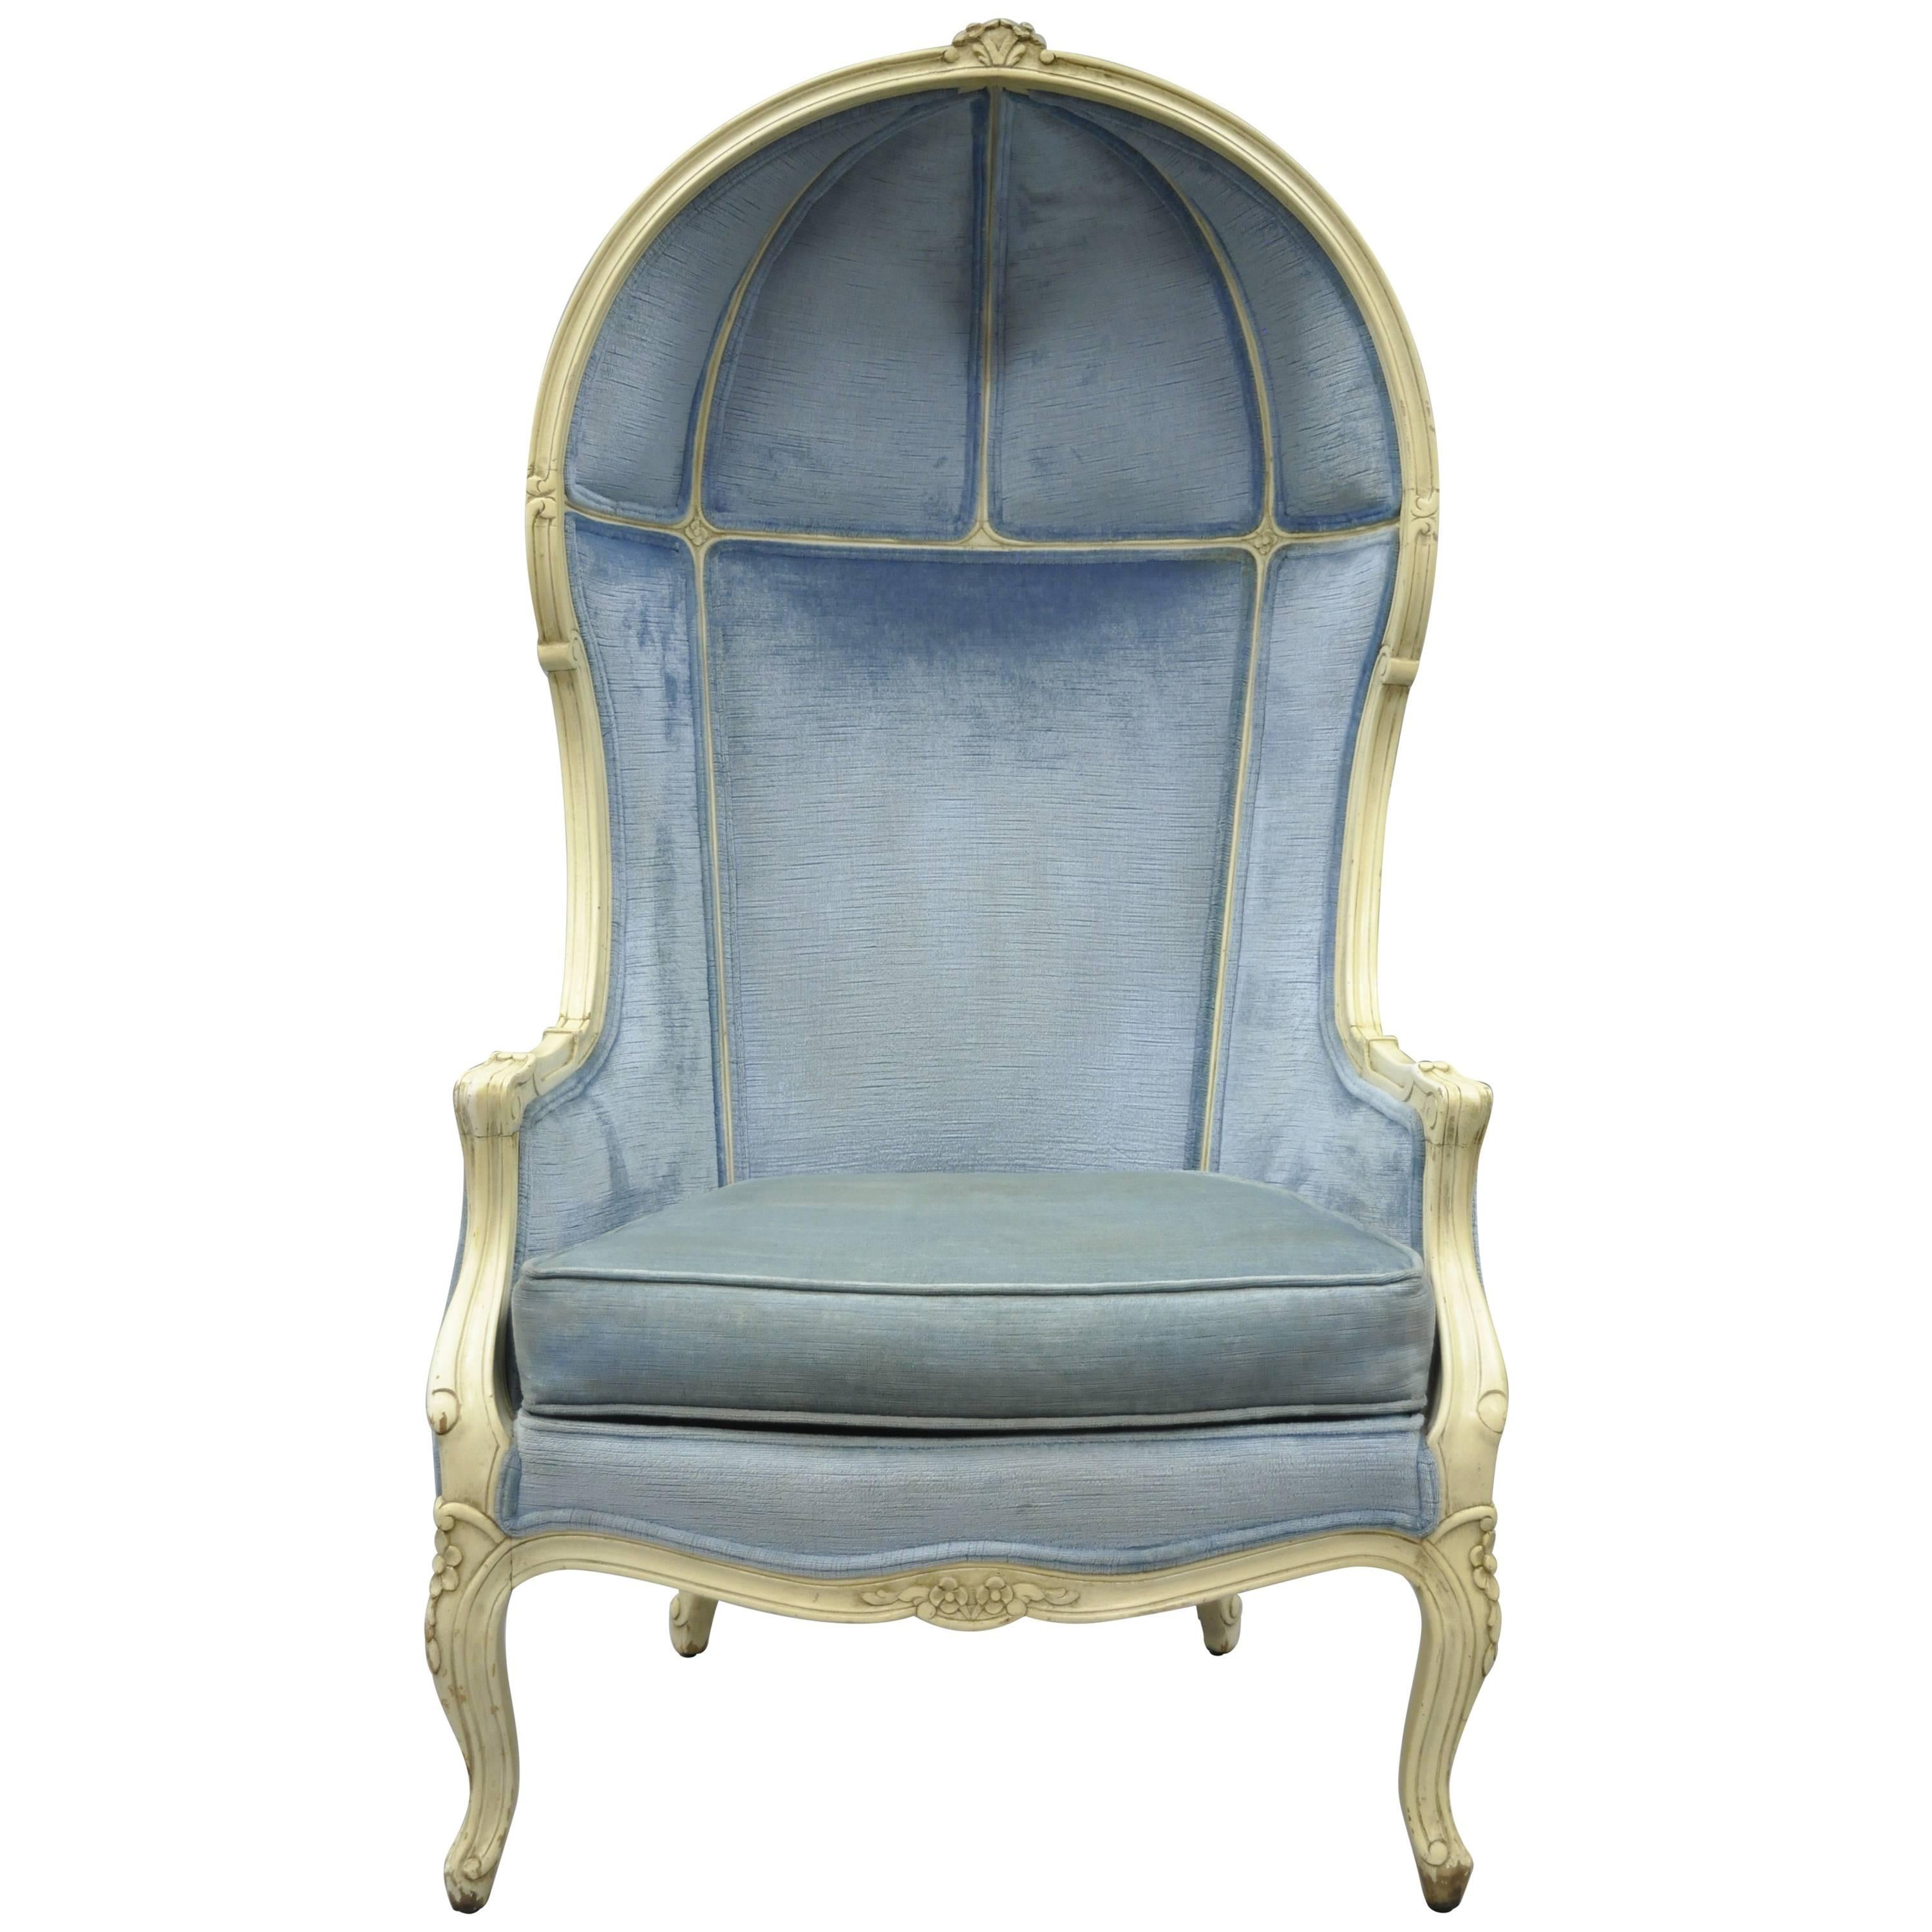 french canopy chair swing dimensions vintage provincial louis xv style upholstered porter hood for sale